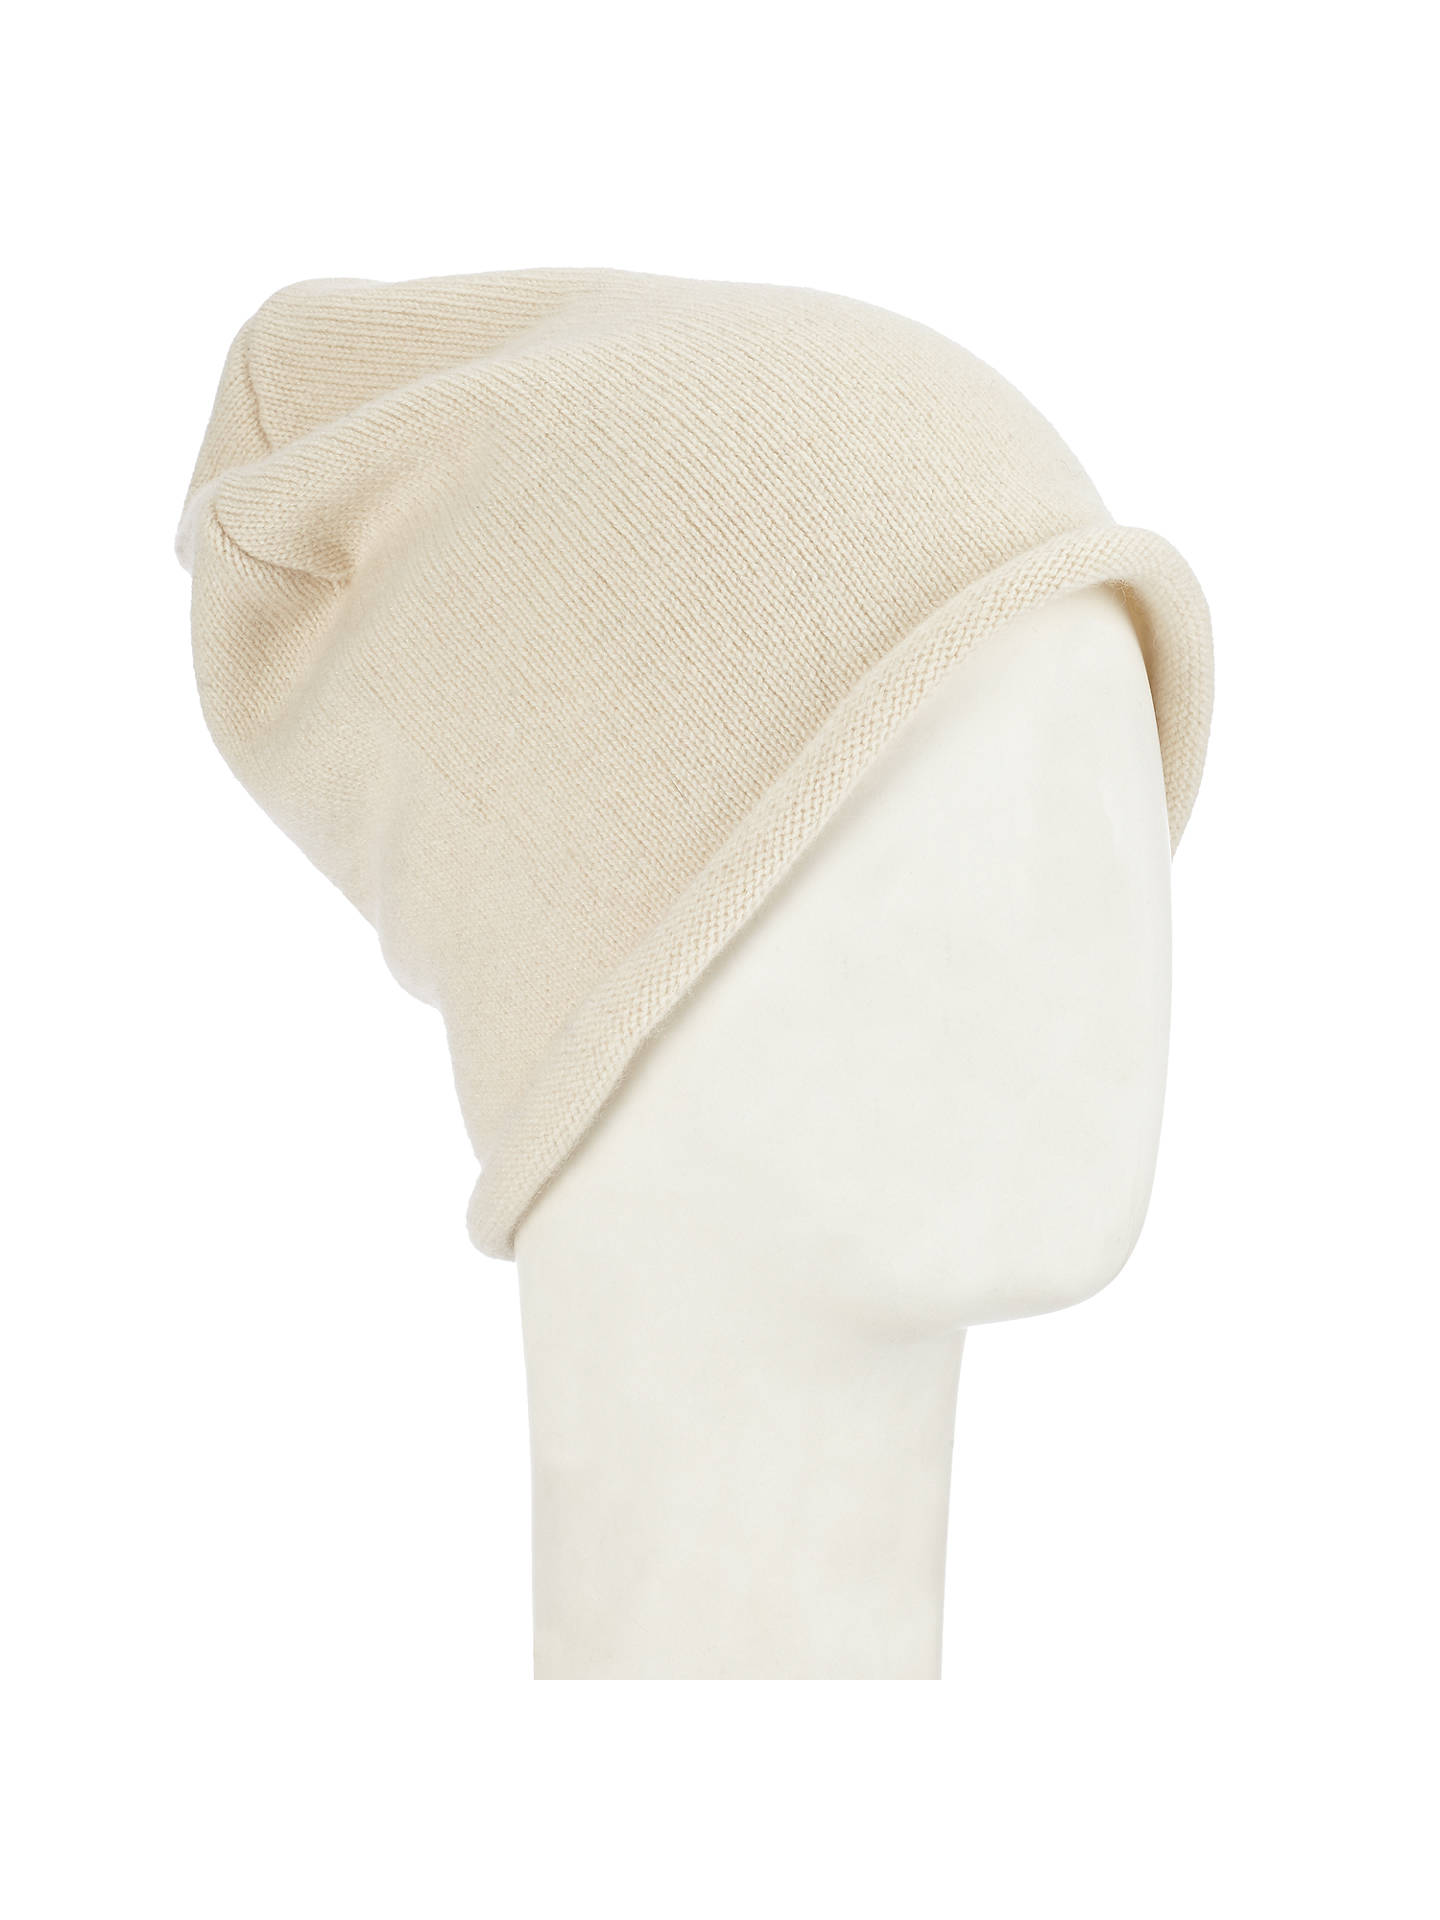 284351f27 John Lewis Made in Italy Cashmere Roll Beanie Hat at John Lewis ...